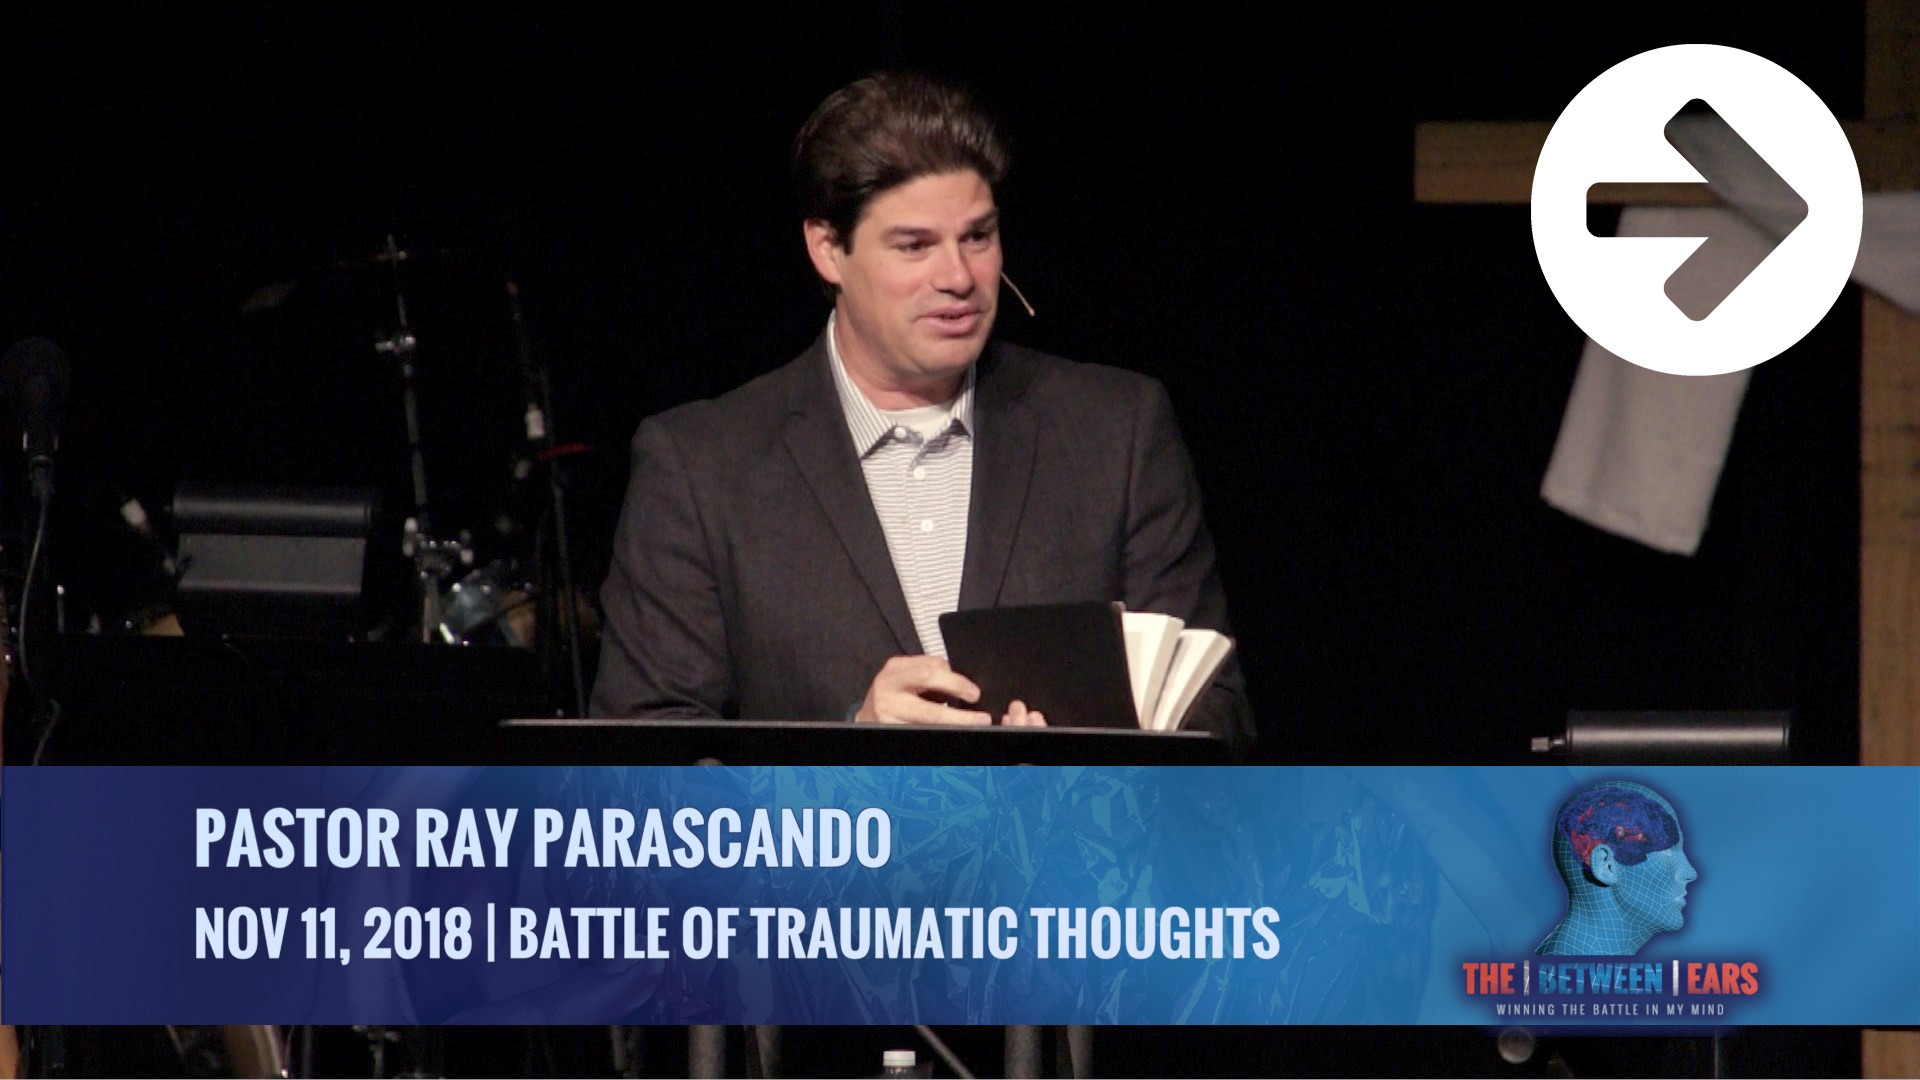 Battle Of Traumatic Thoughts  Image